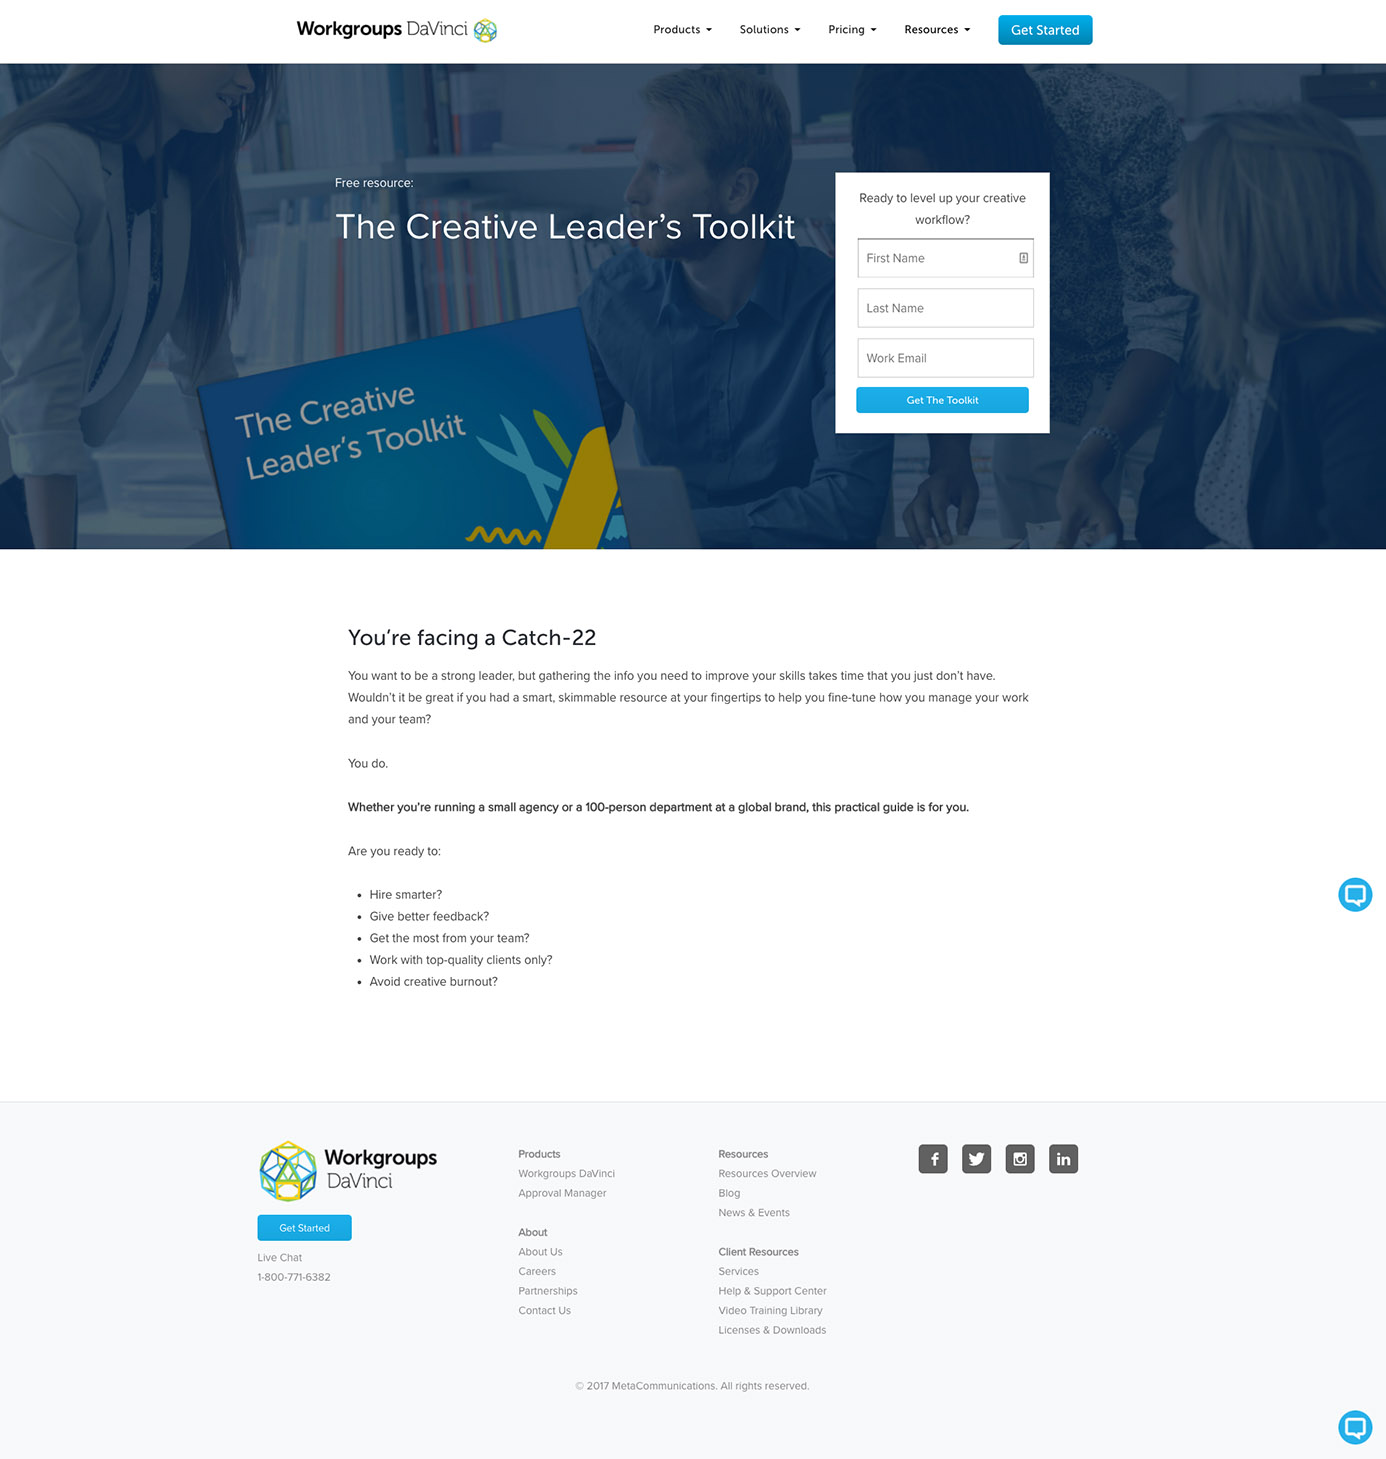 Workgroup DaVinci Landing Page